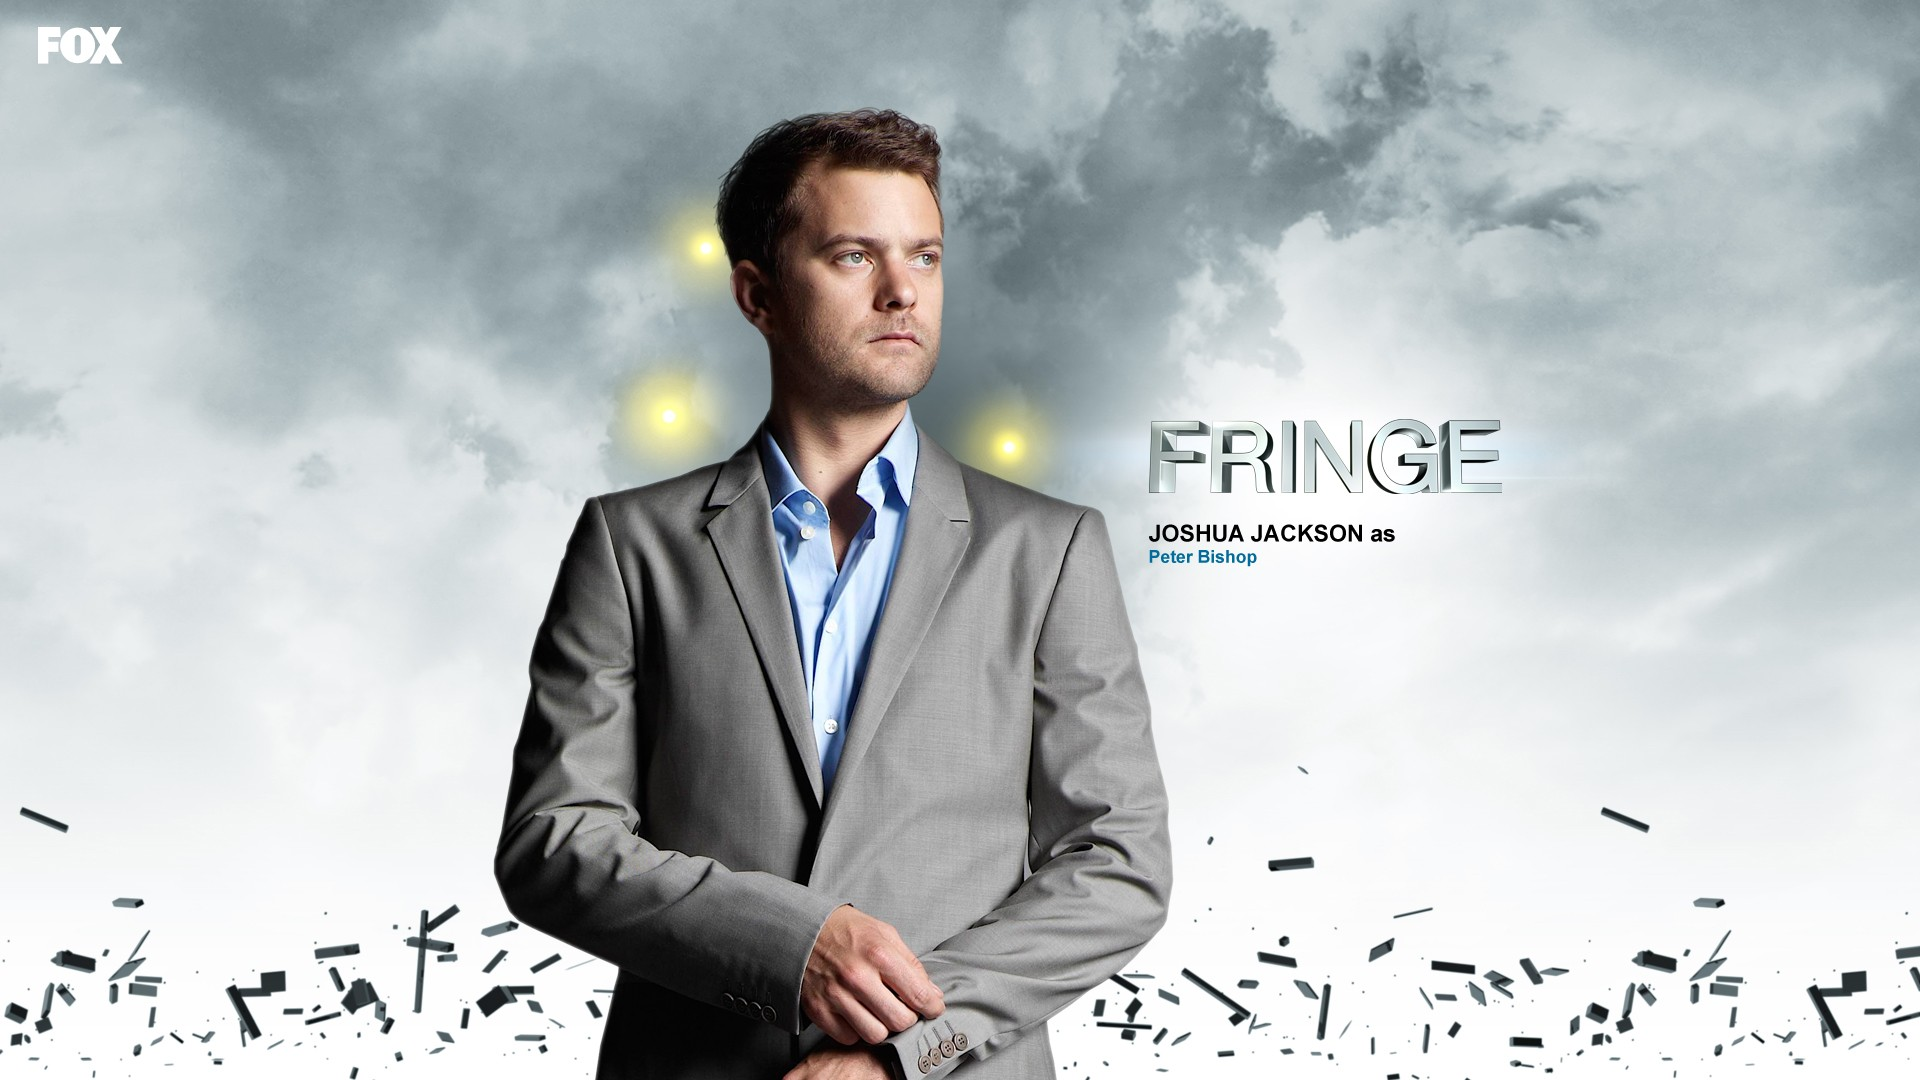 Peter Bishop, the main character of the series Fringe